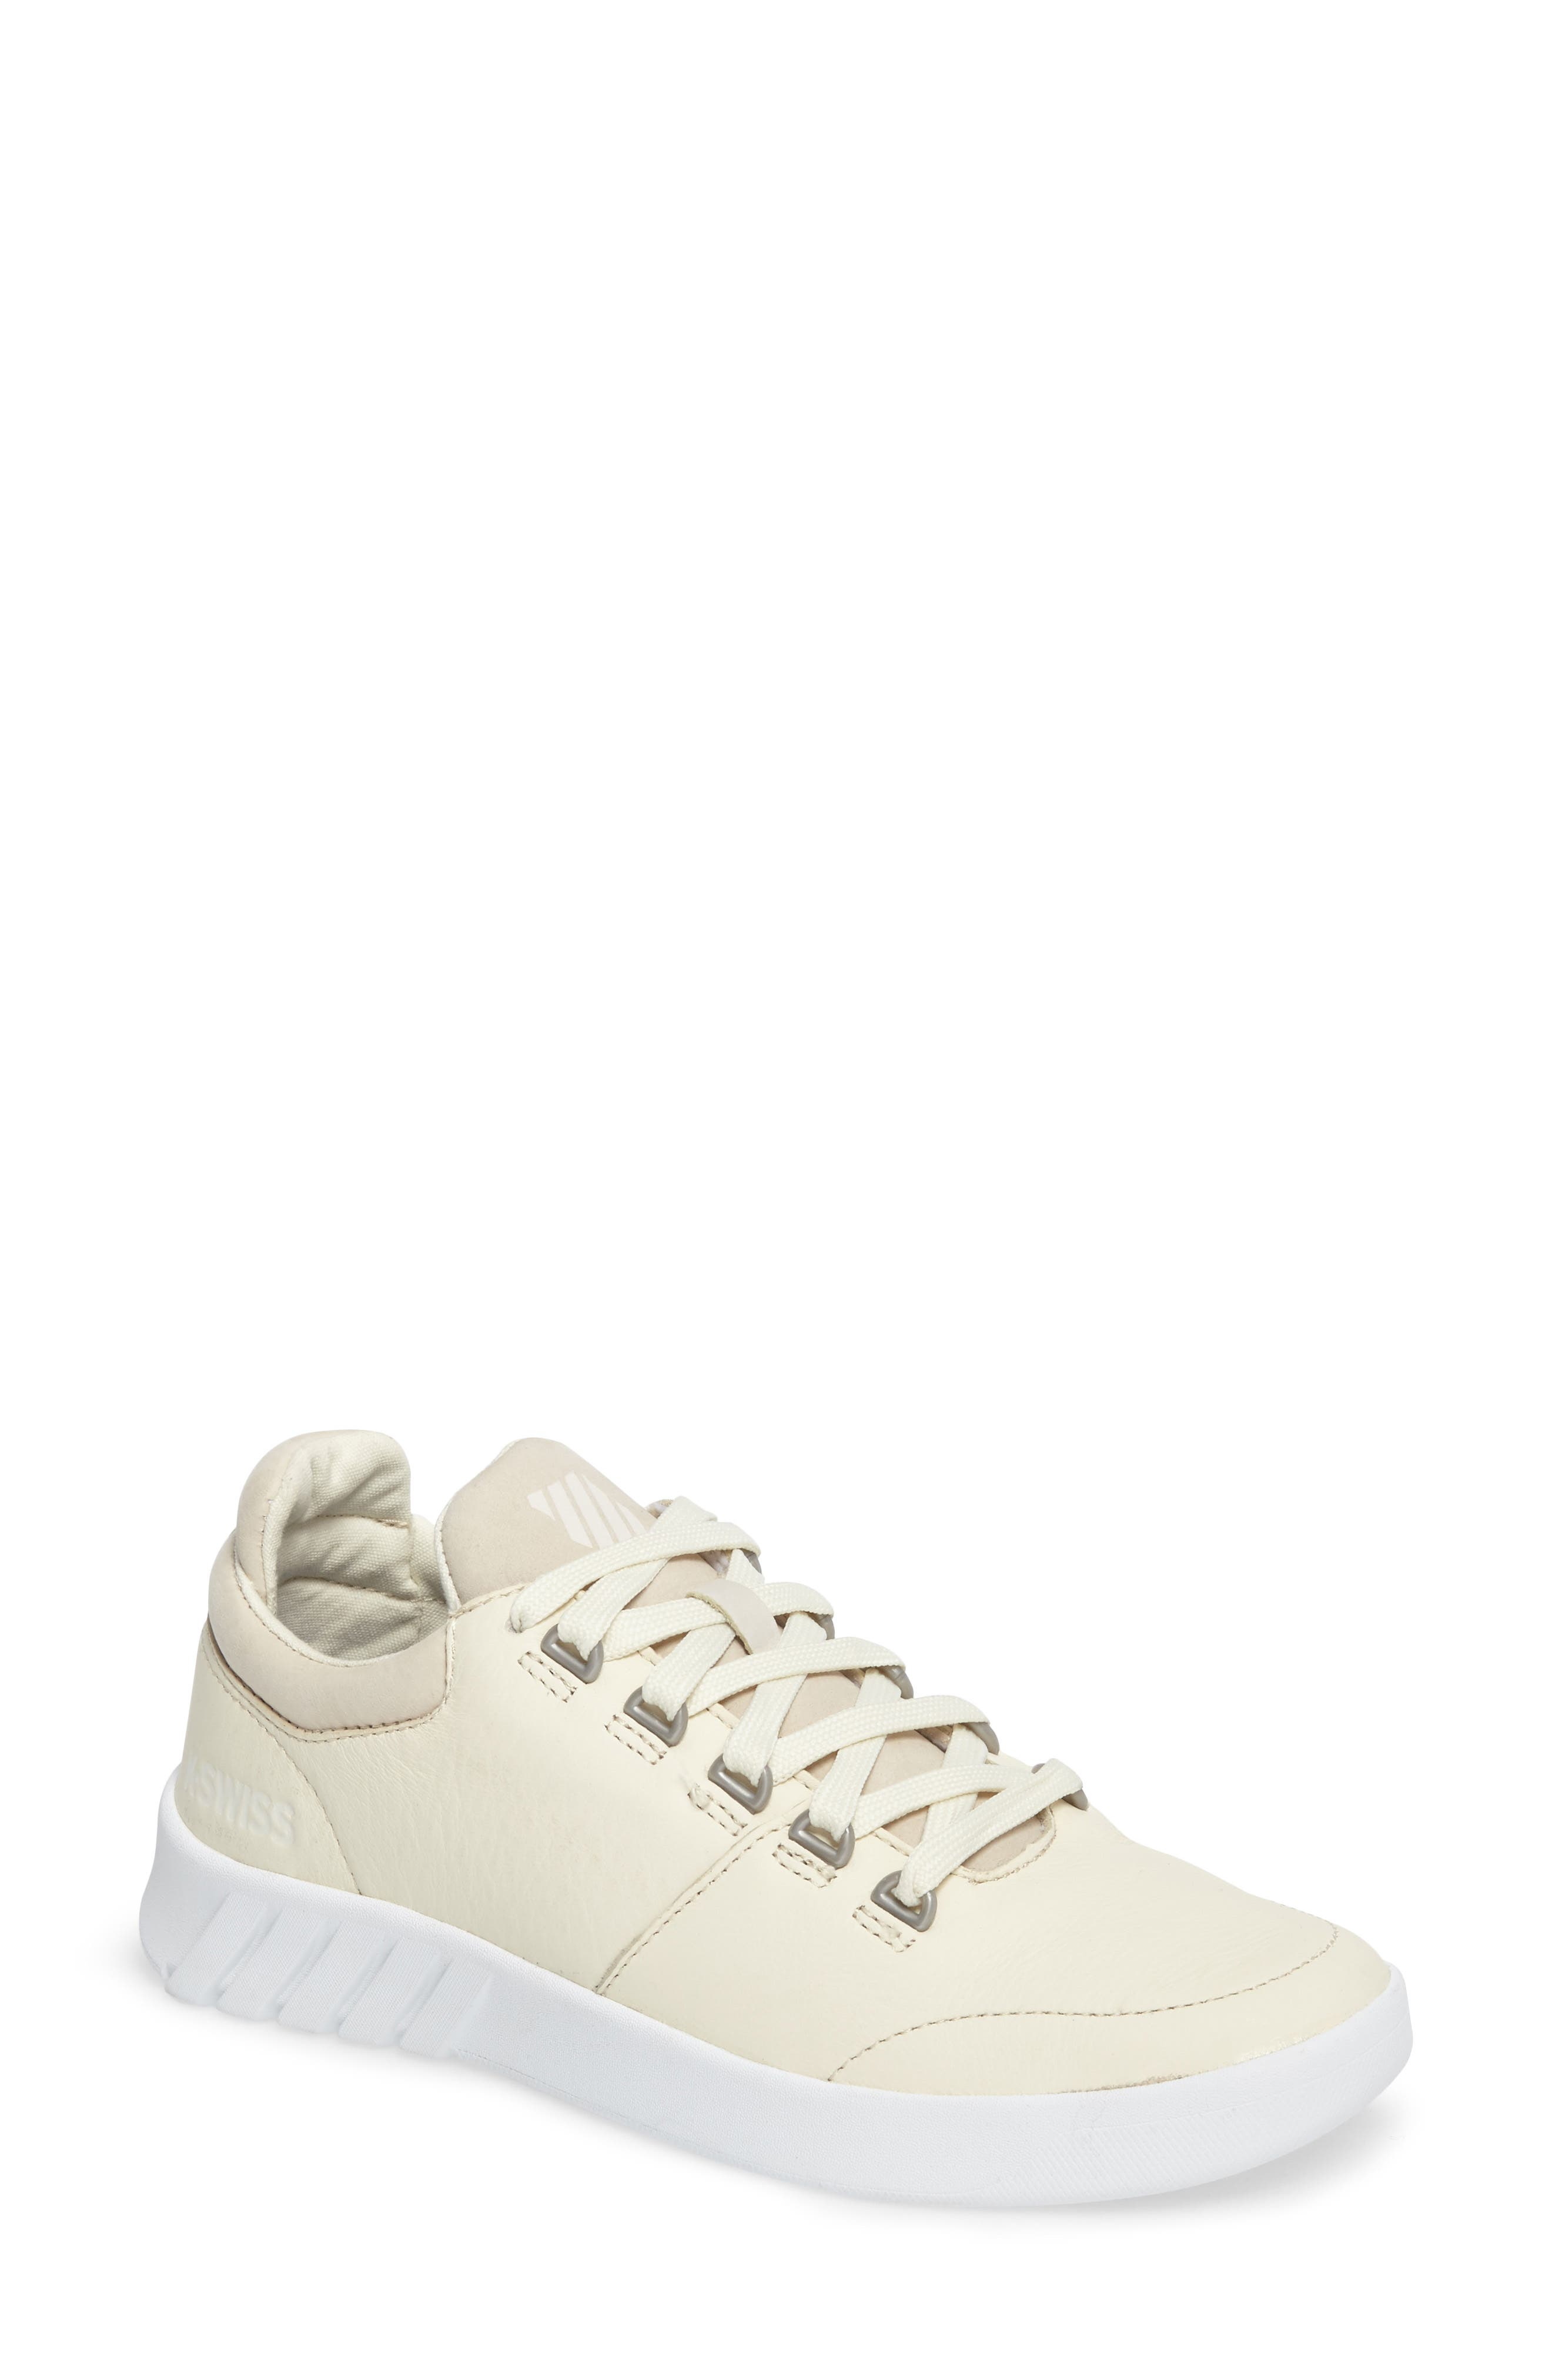 Aero Trainer Sneaker,                             Main thumbnail 1, color,                             VANILLA ICE/ WHITE